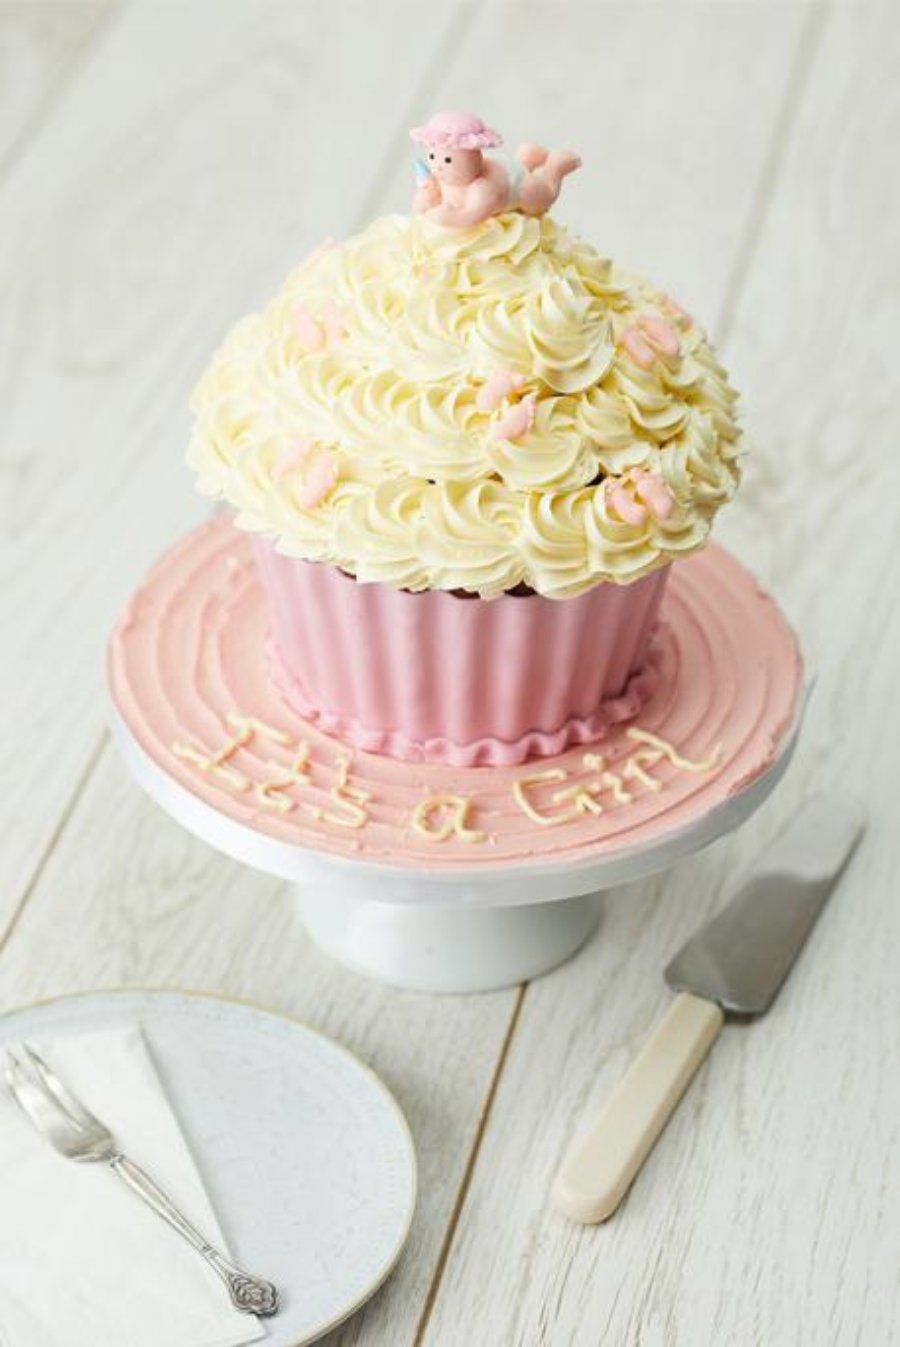 It's A Girl! - Giant Cupcake